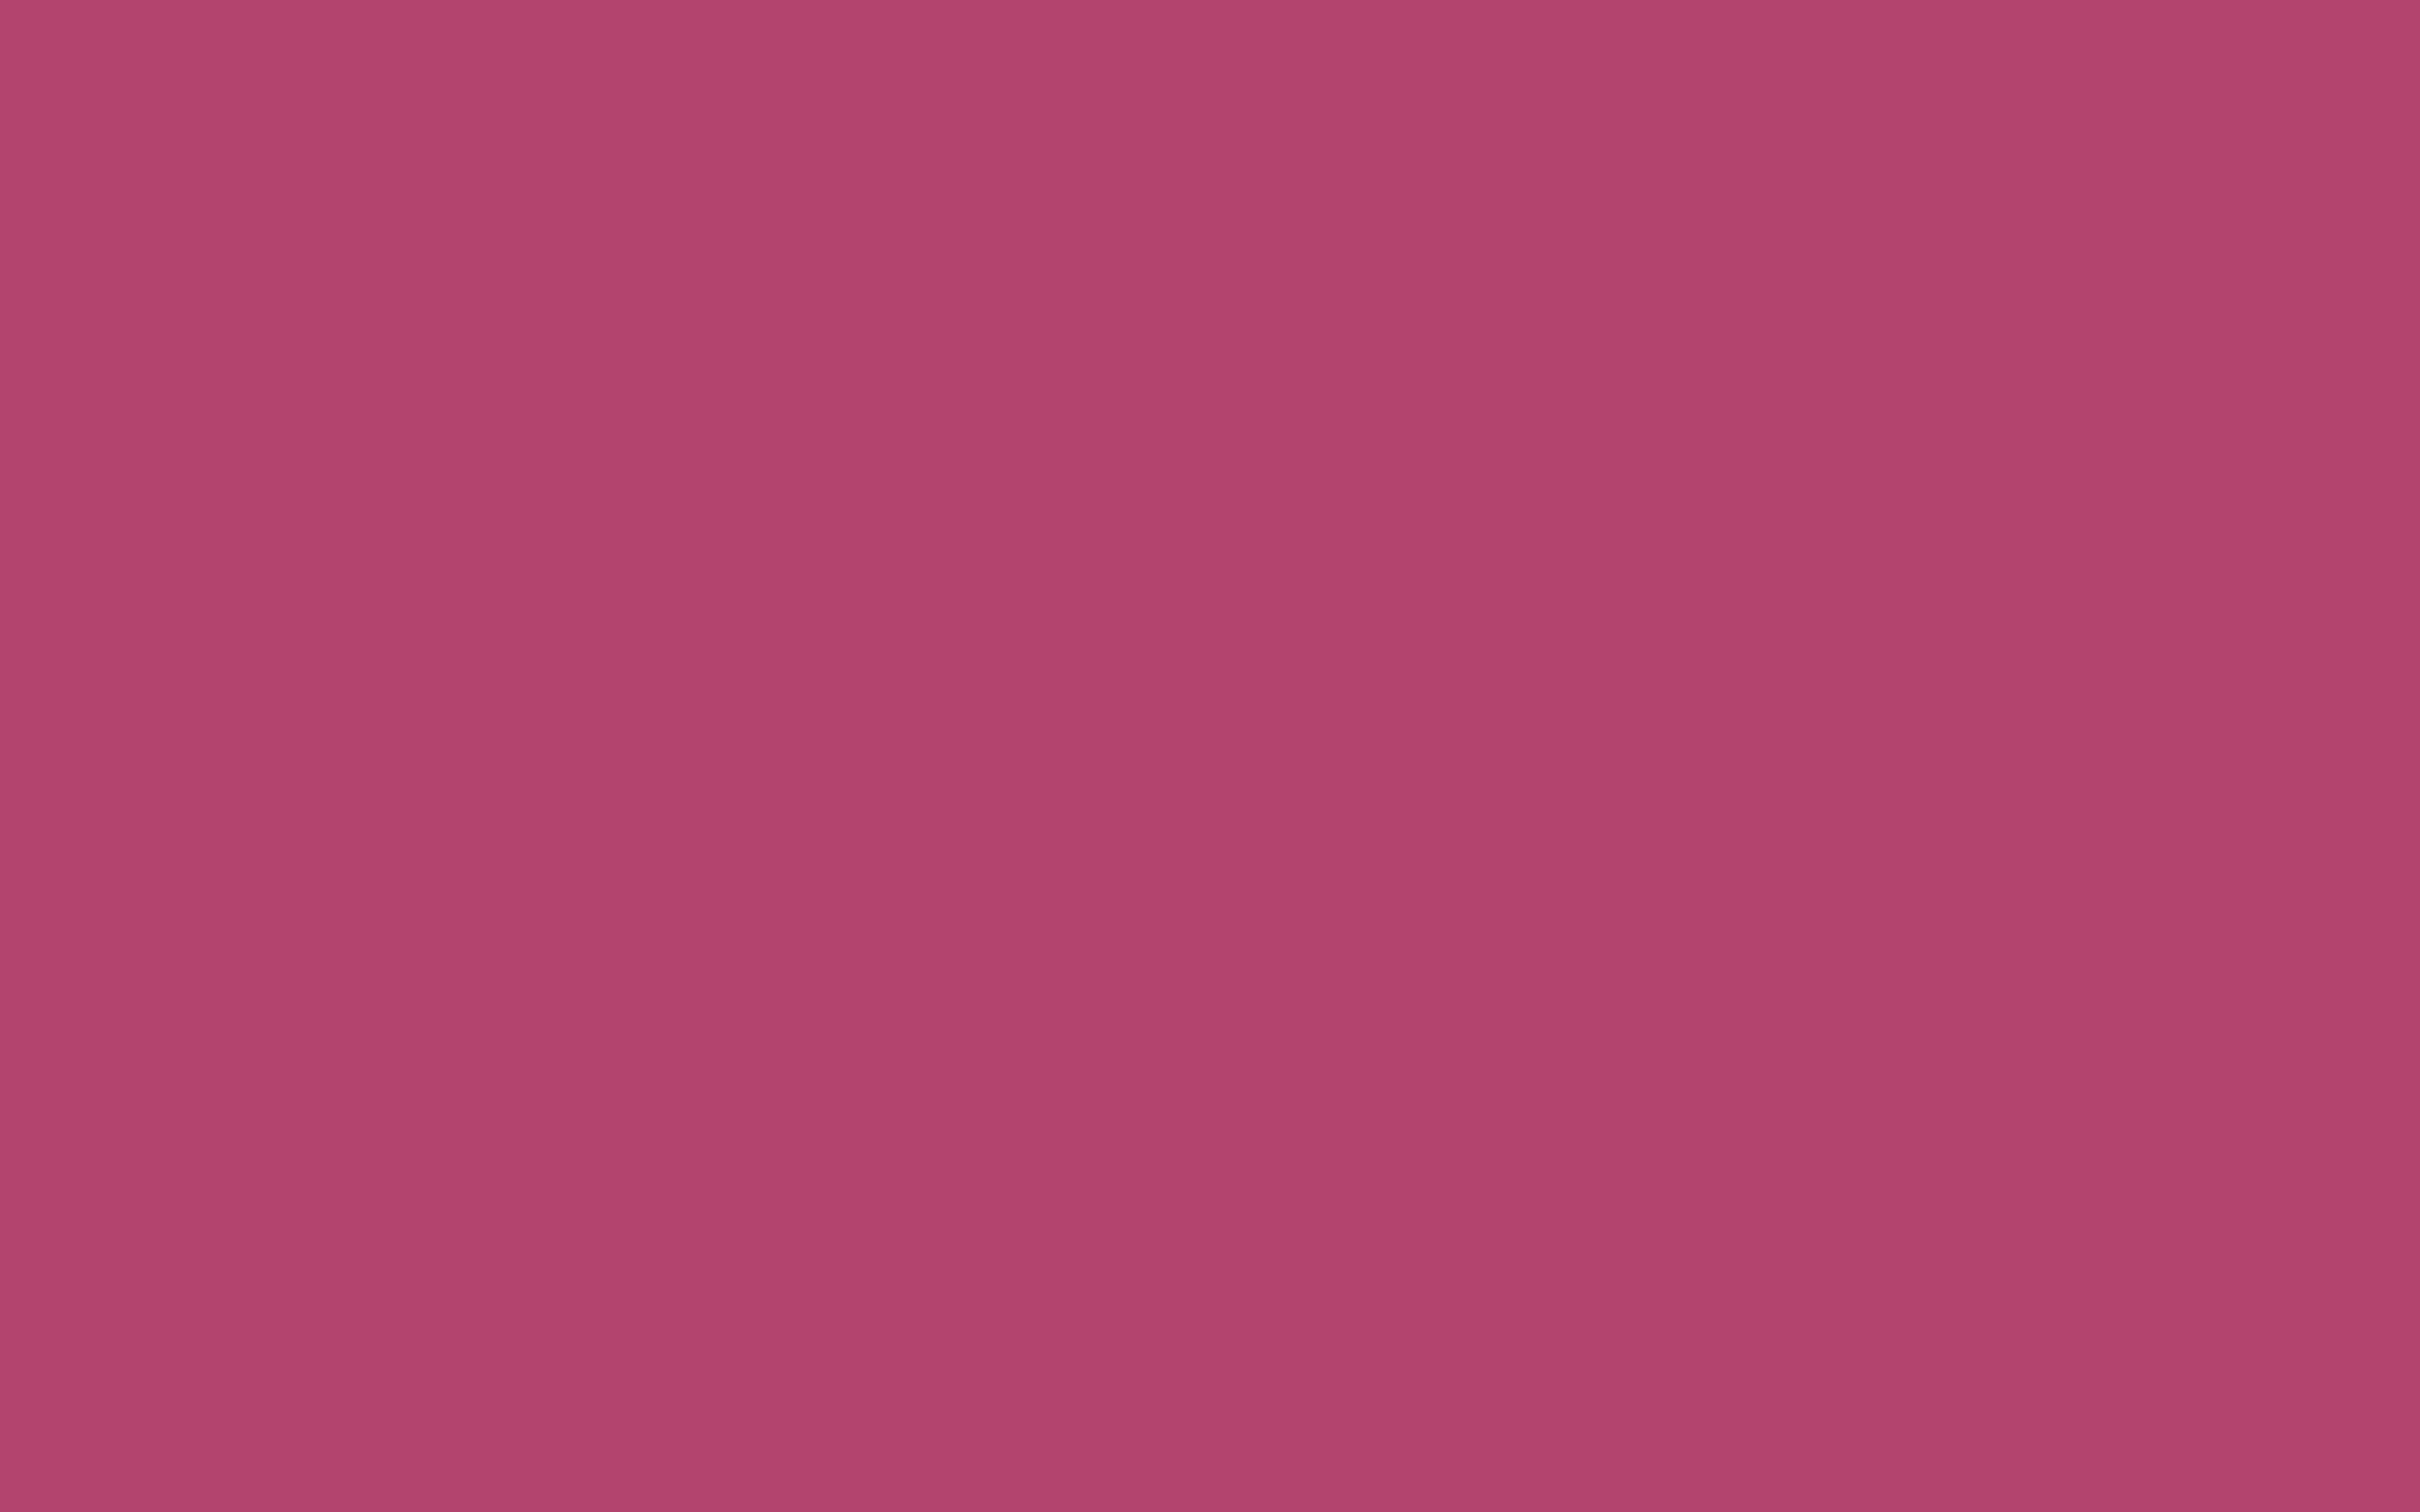 2560x1600 Raspberry Rose Solid Color Background